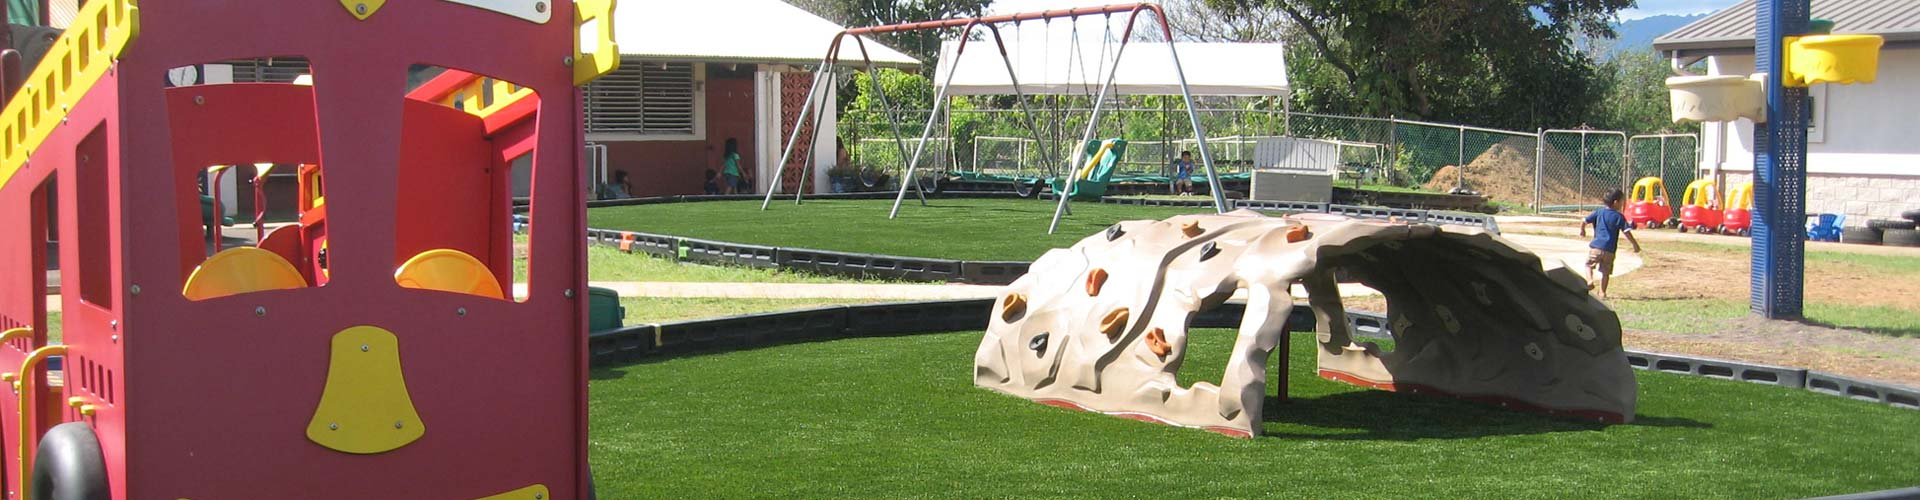 Artificial grass playground turf installation in Hawaii